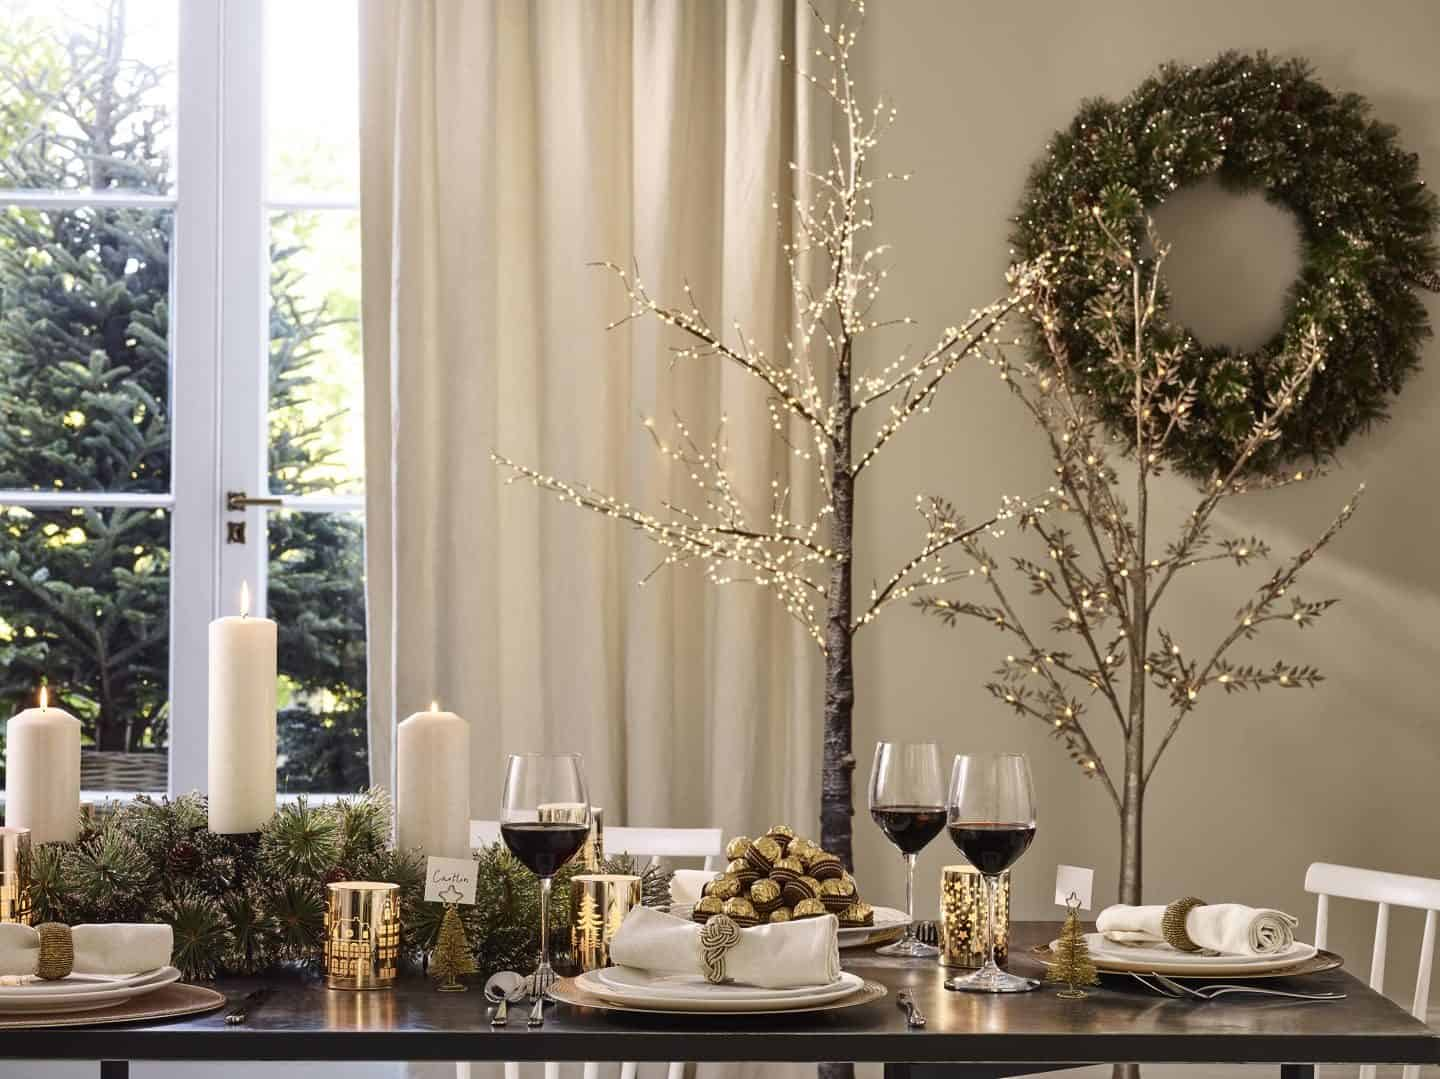 Dobbies All That Glitters Christmas Trend - Dining table that incorporates lots of Christmas sparkle